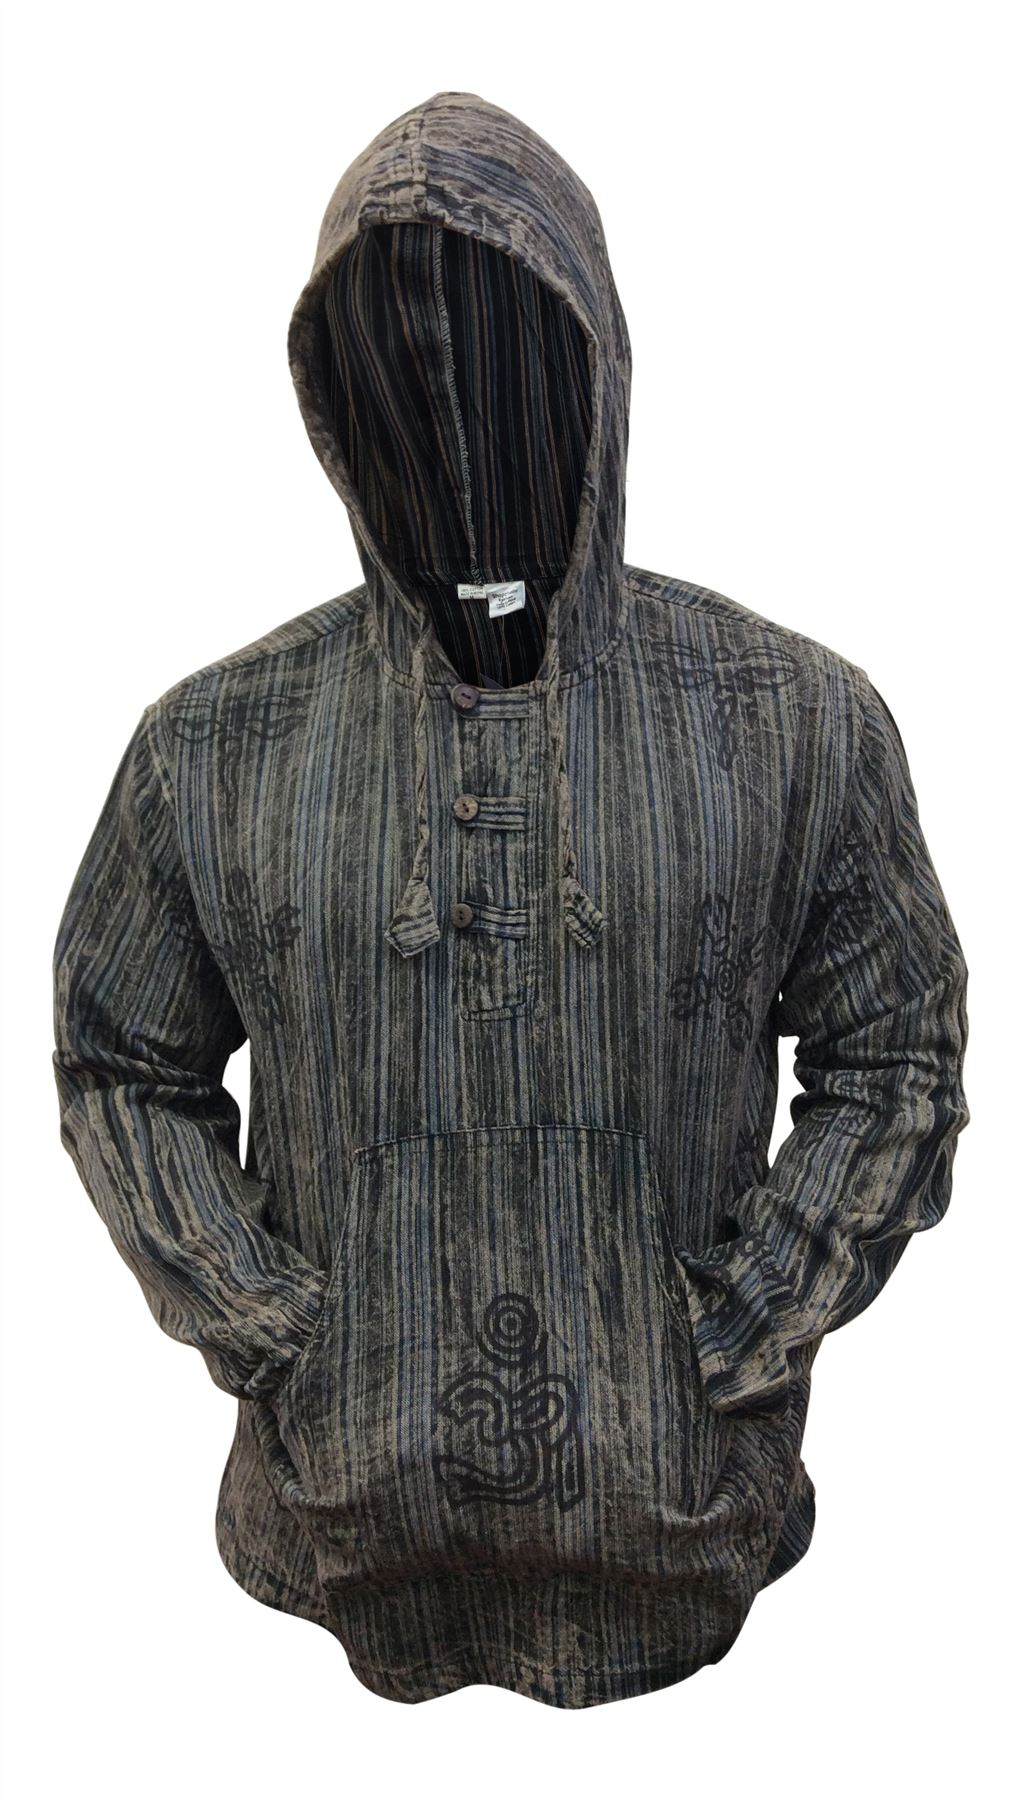 Mens-Stonewashed-Striped-Hooded-Grandad-Shirt-Long-Sleeve-Casual-Hooded-Top thumbnail 4